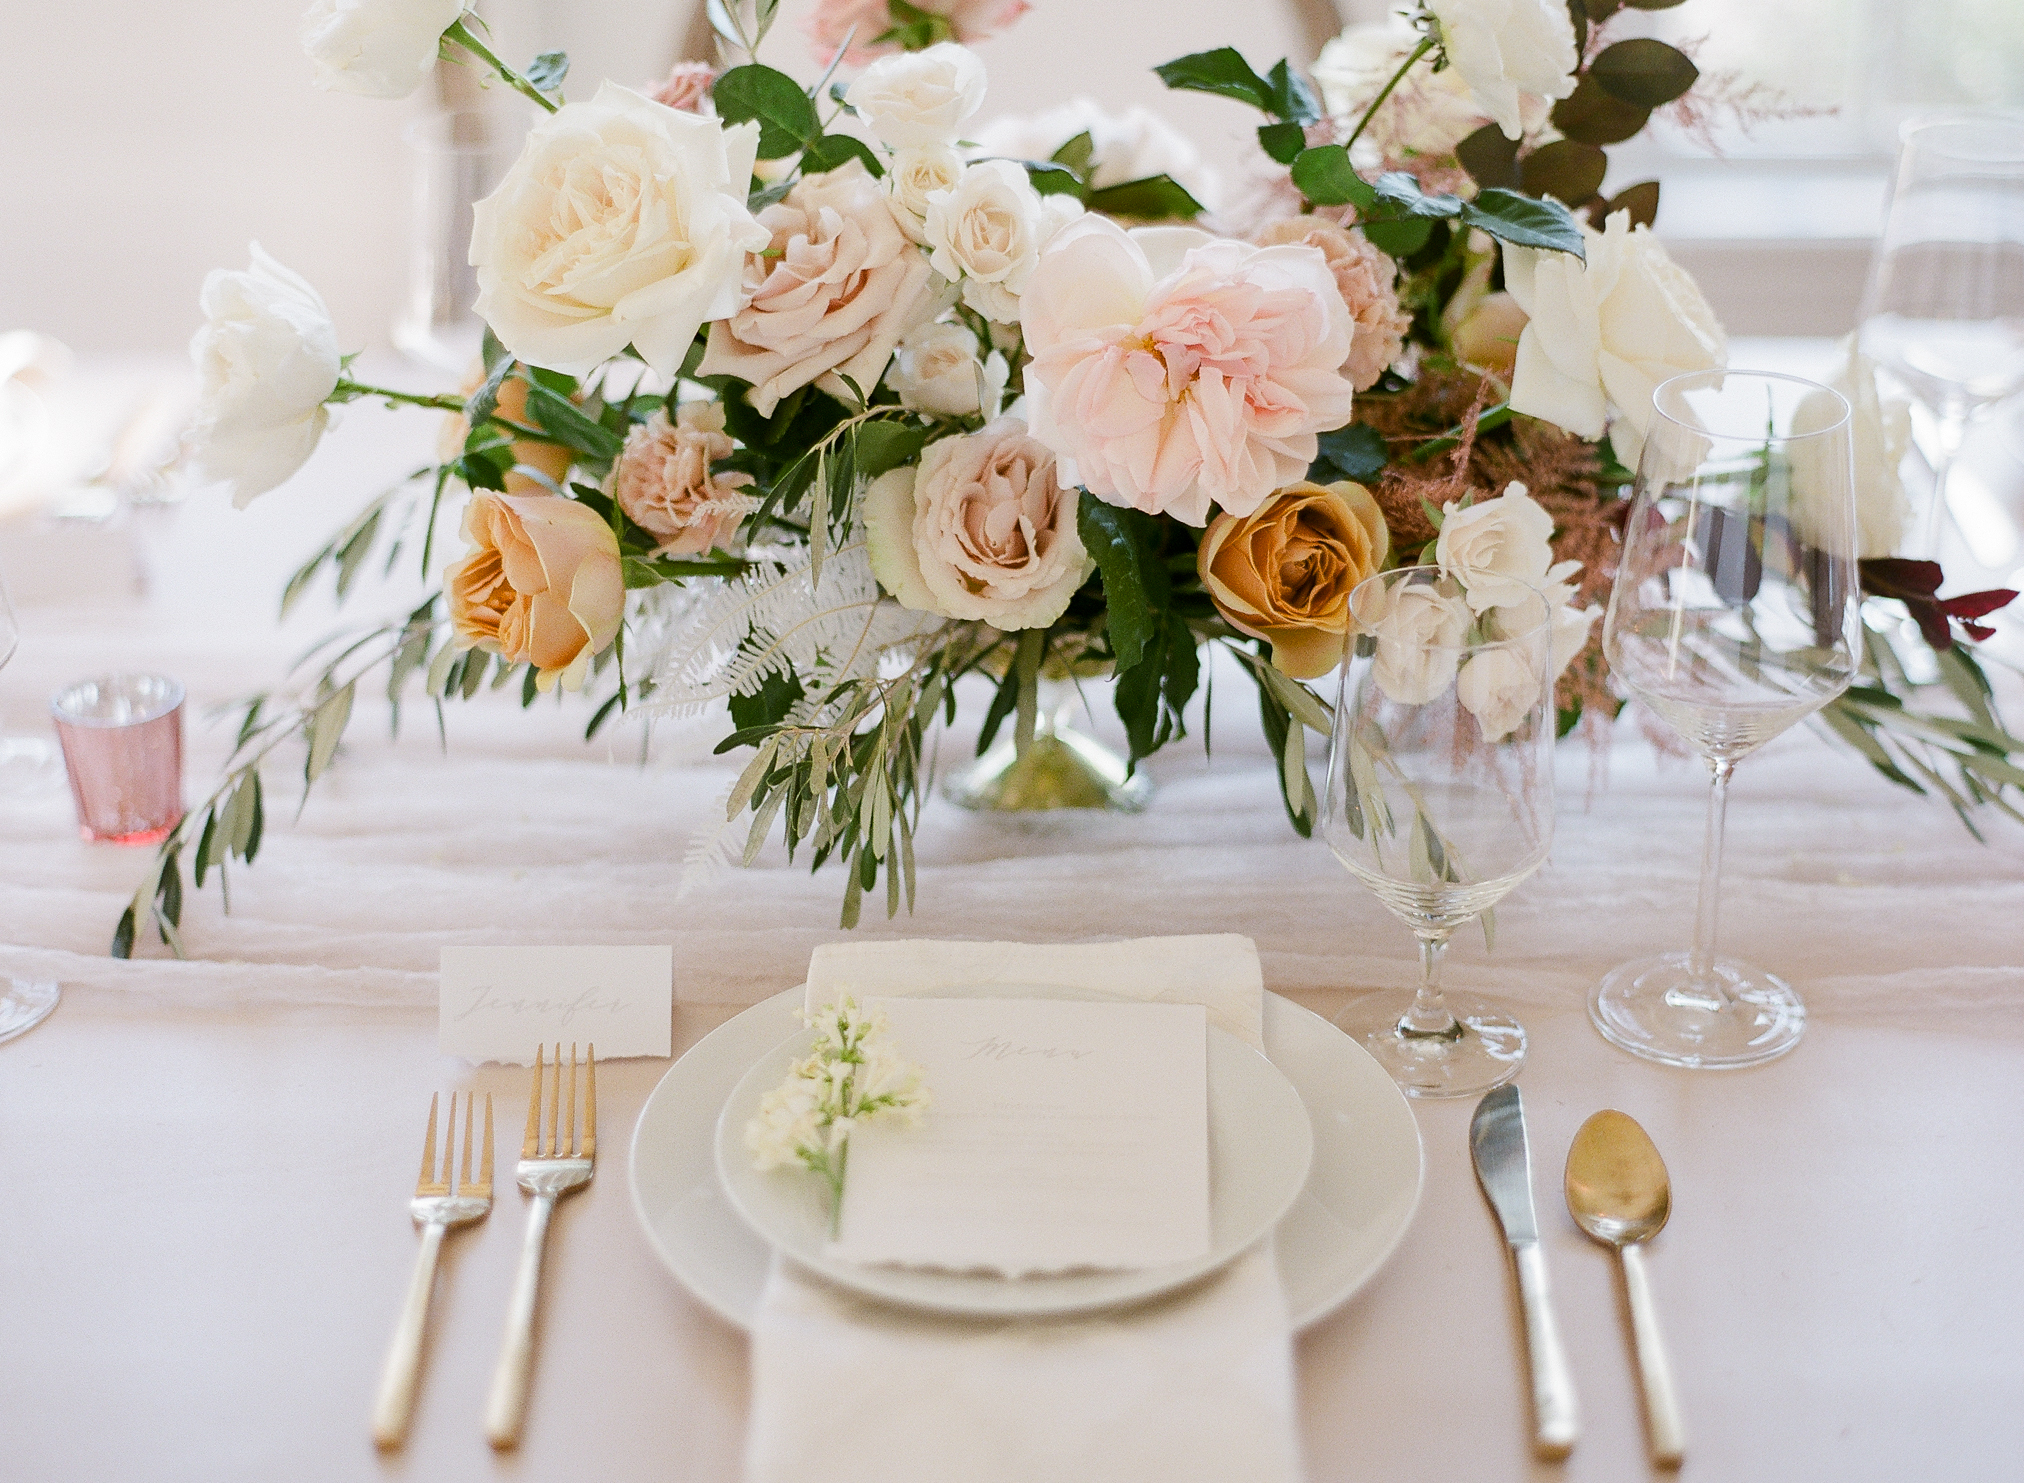 Beautiful Centerpiece bouquet on a table